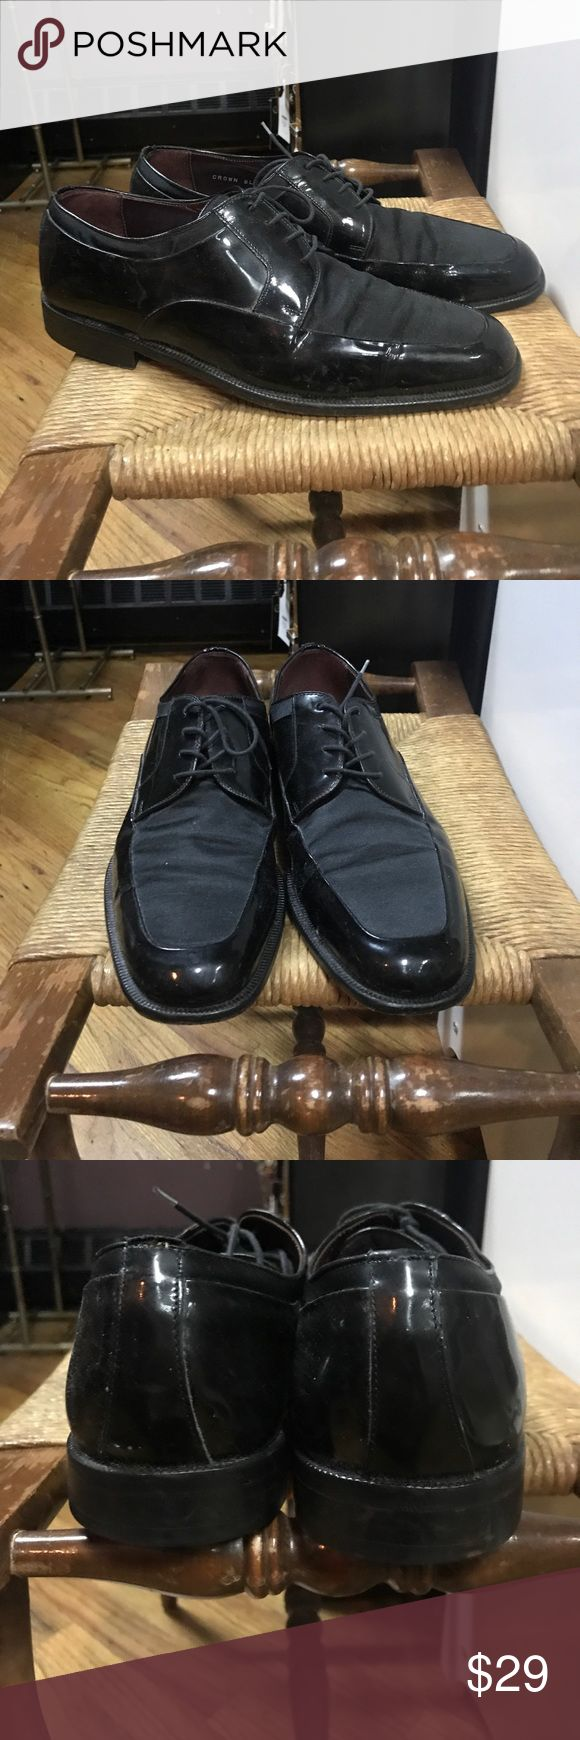 Sandro Moscoloni patent & nylon black dress shoes Sandro Moscoloni Black patent leather & satiny nylon, lace up, dress shoes. EUC. Only flaws is some scuffing to heels. Sandro Moscoloni Shoes